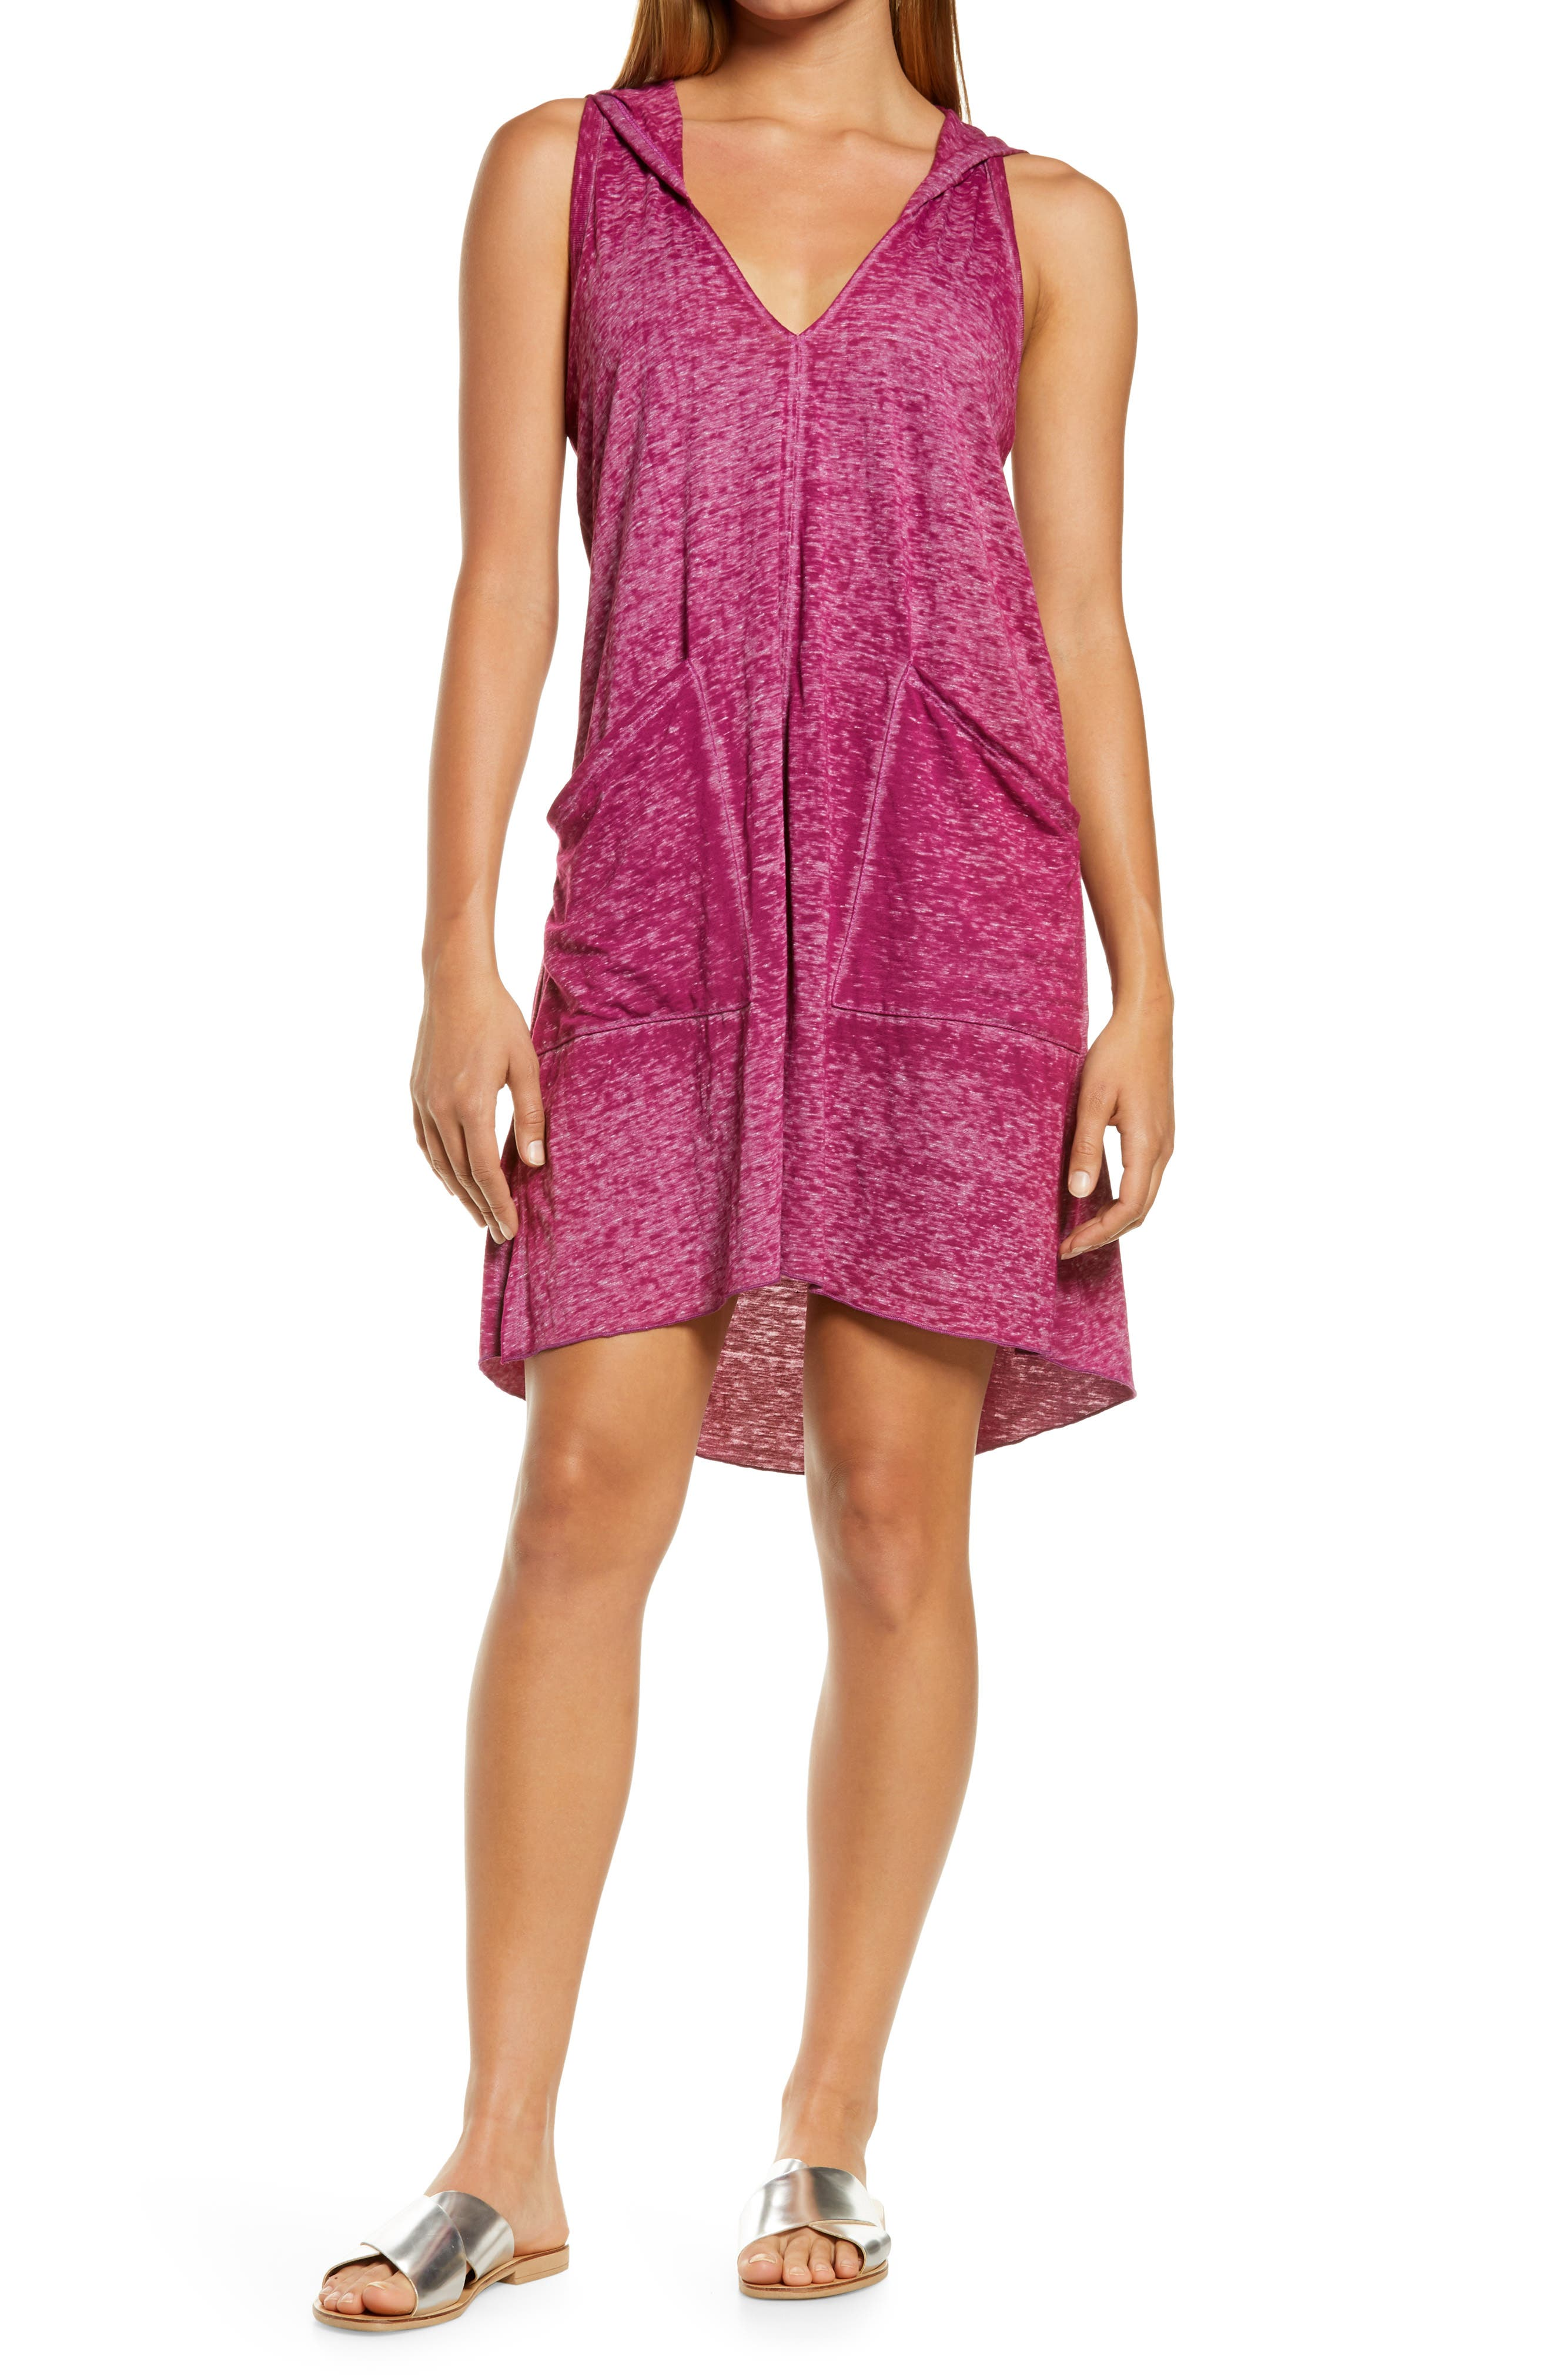 Beach Date Hooded Cover-Up Dress